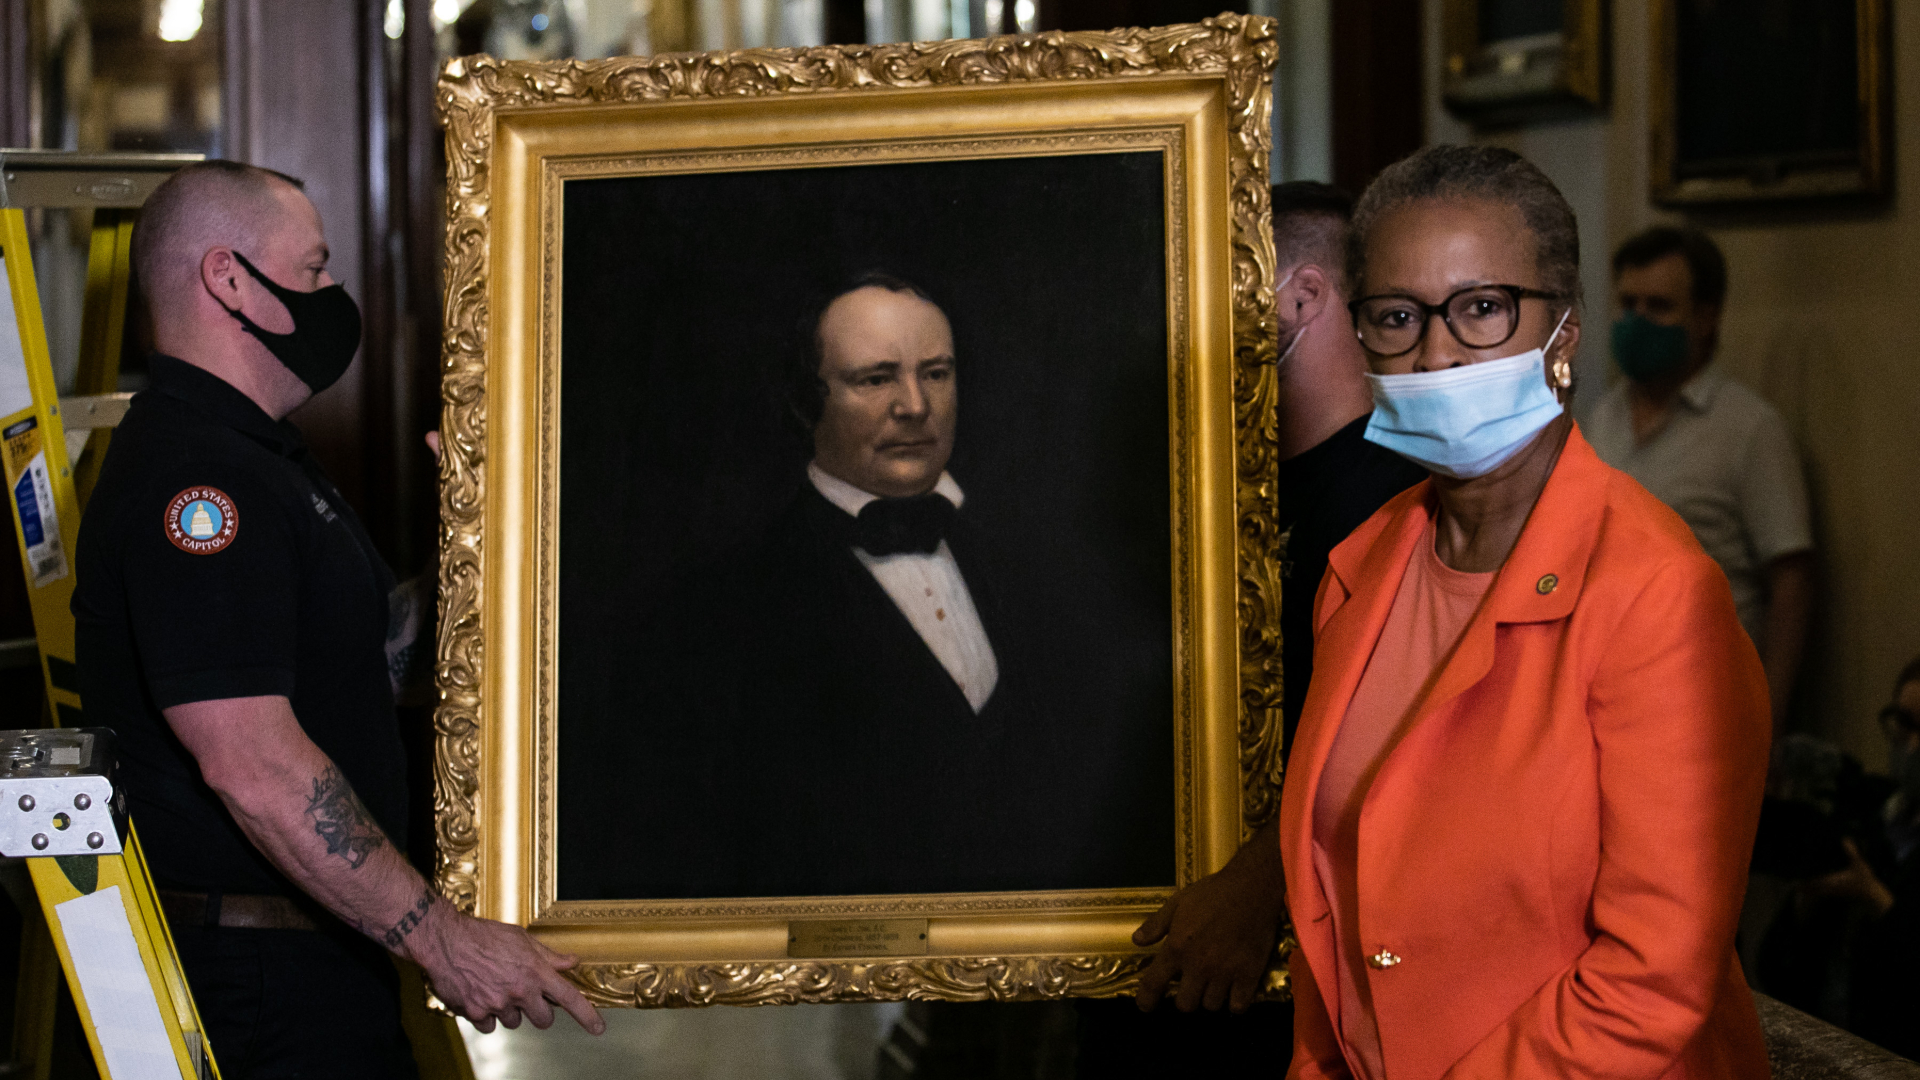 House Clerk Cheryl Johnson looks on as maintenance workers remove a painting of former speaker James Orr of South Carolina, from the east staircase of the Speakers lobby, on Capitol Hill, on June 18, 2020. (Graeme Jennings / Getty Images)